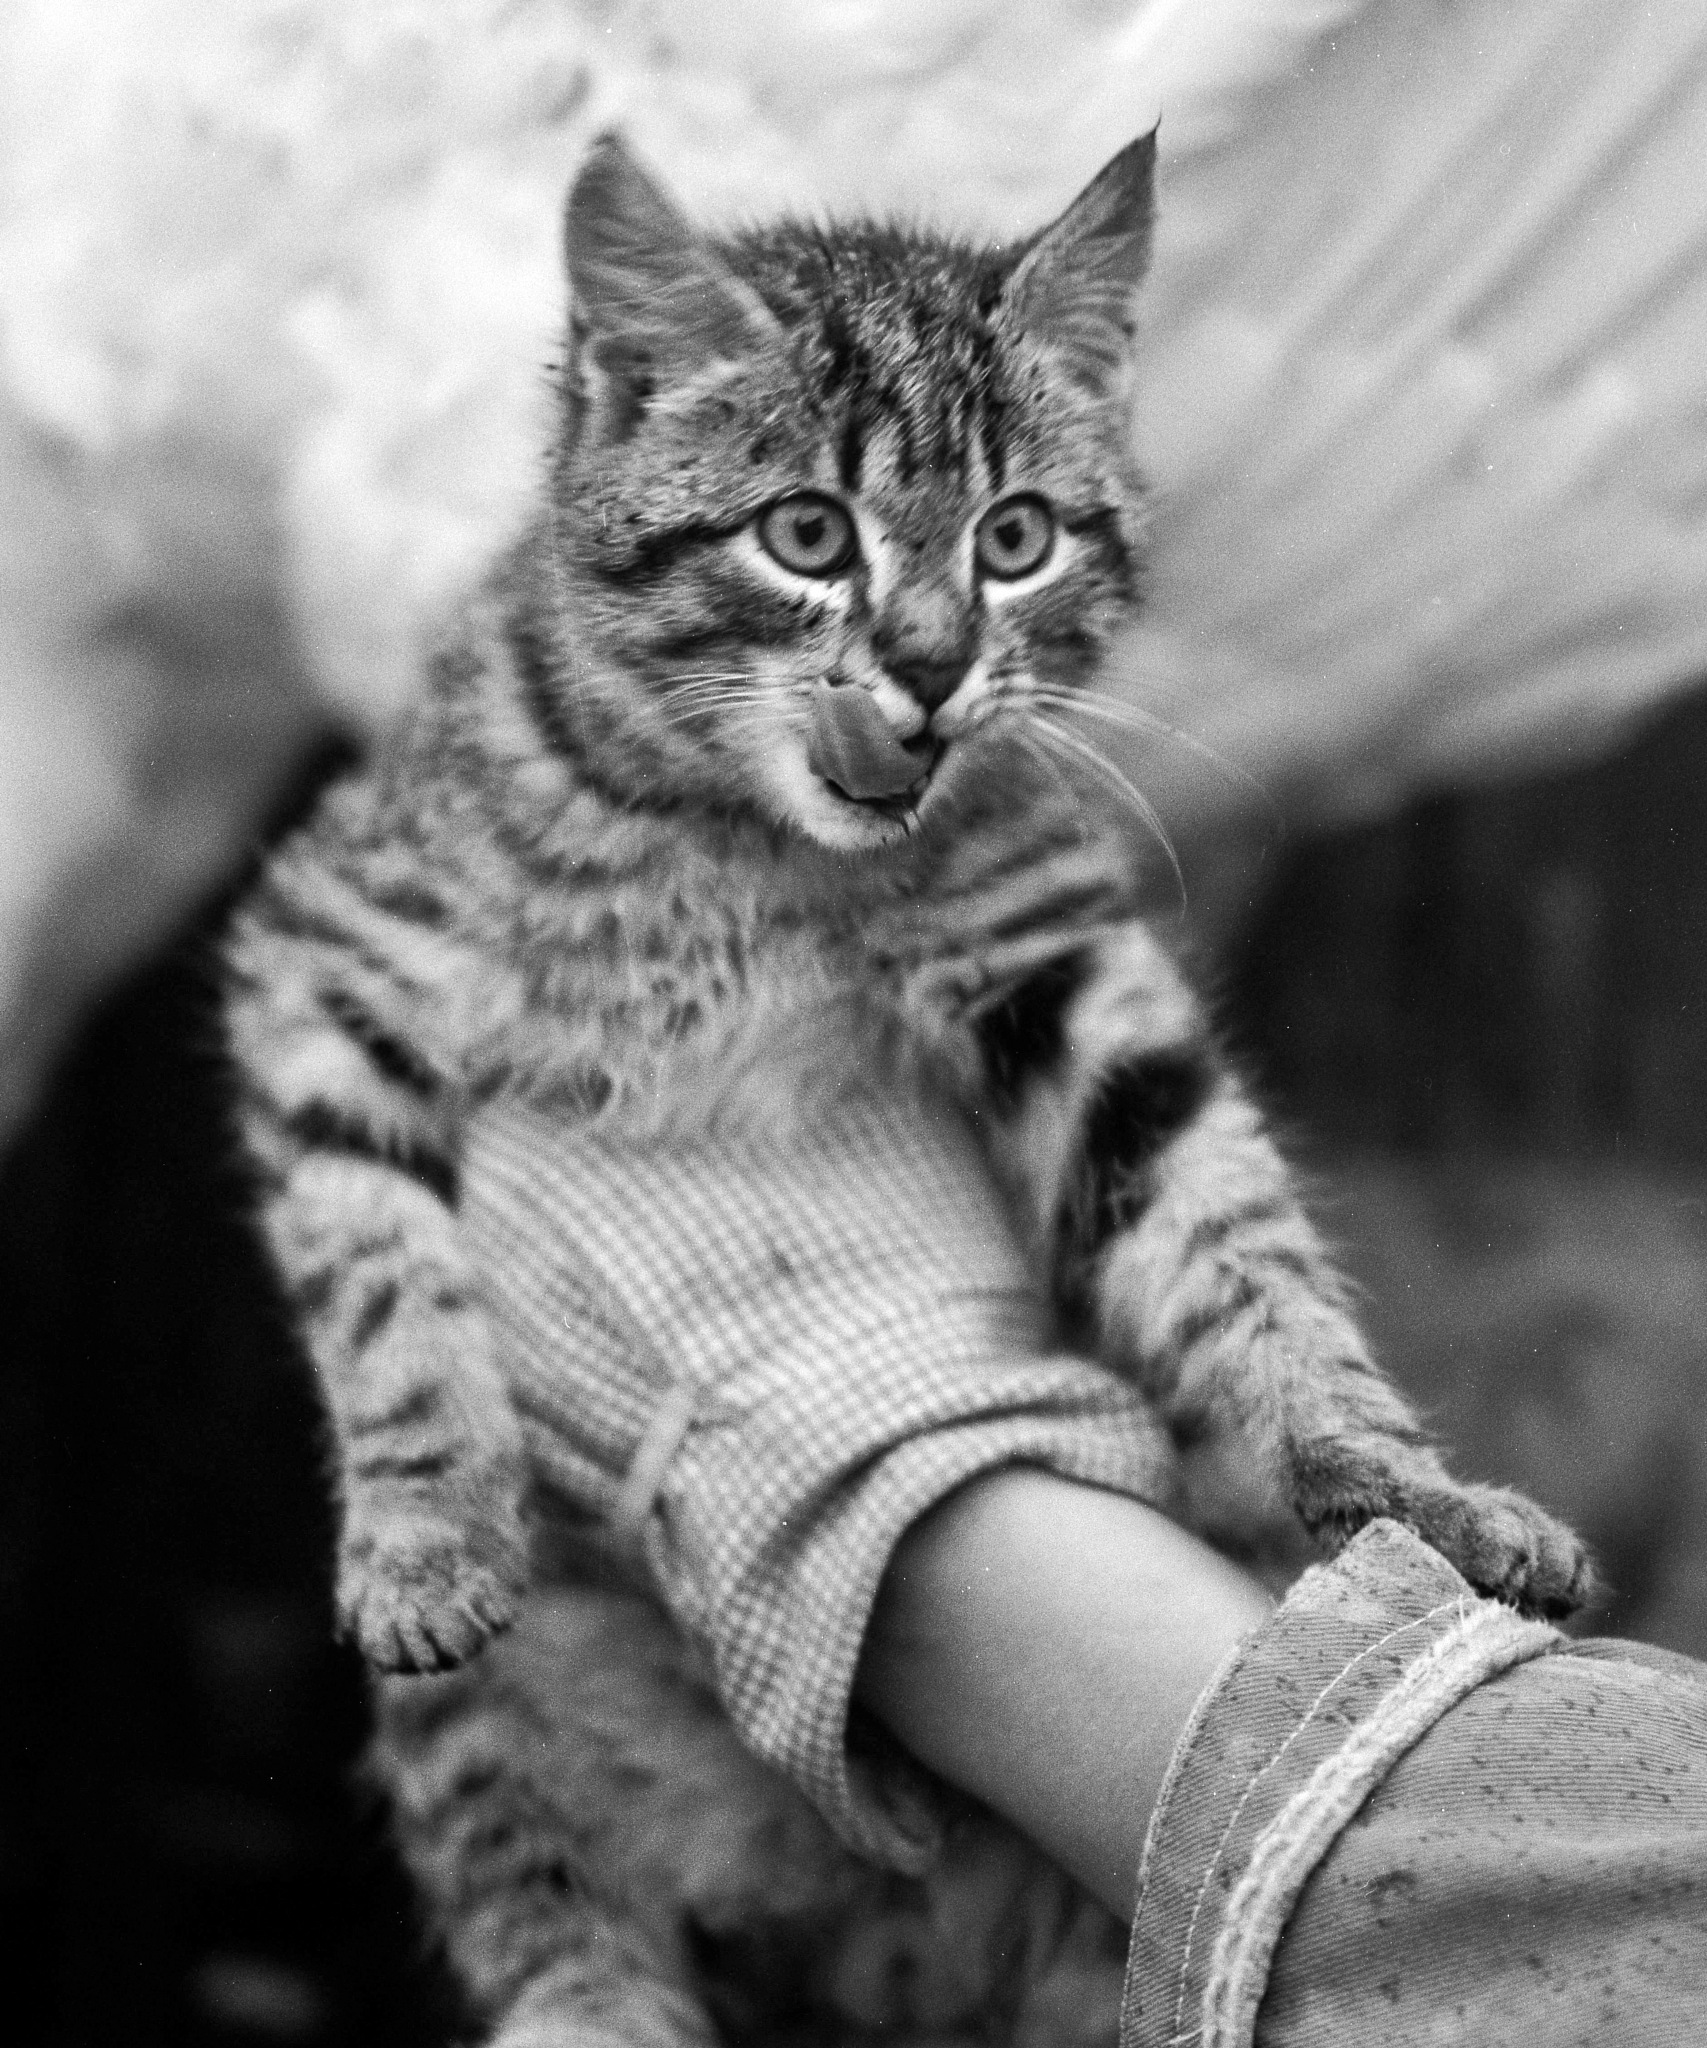 Cat, Leopold or short form Leo by Lasse Tur